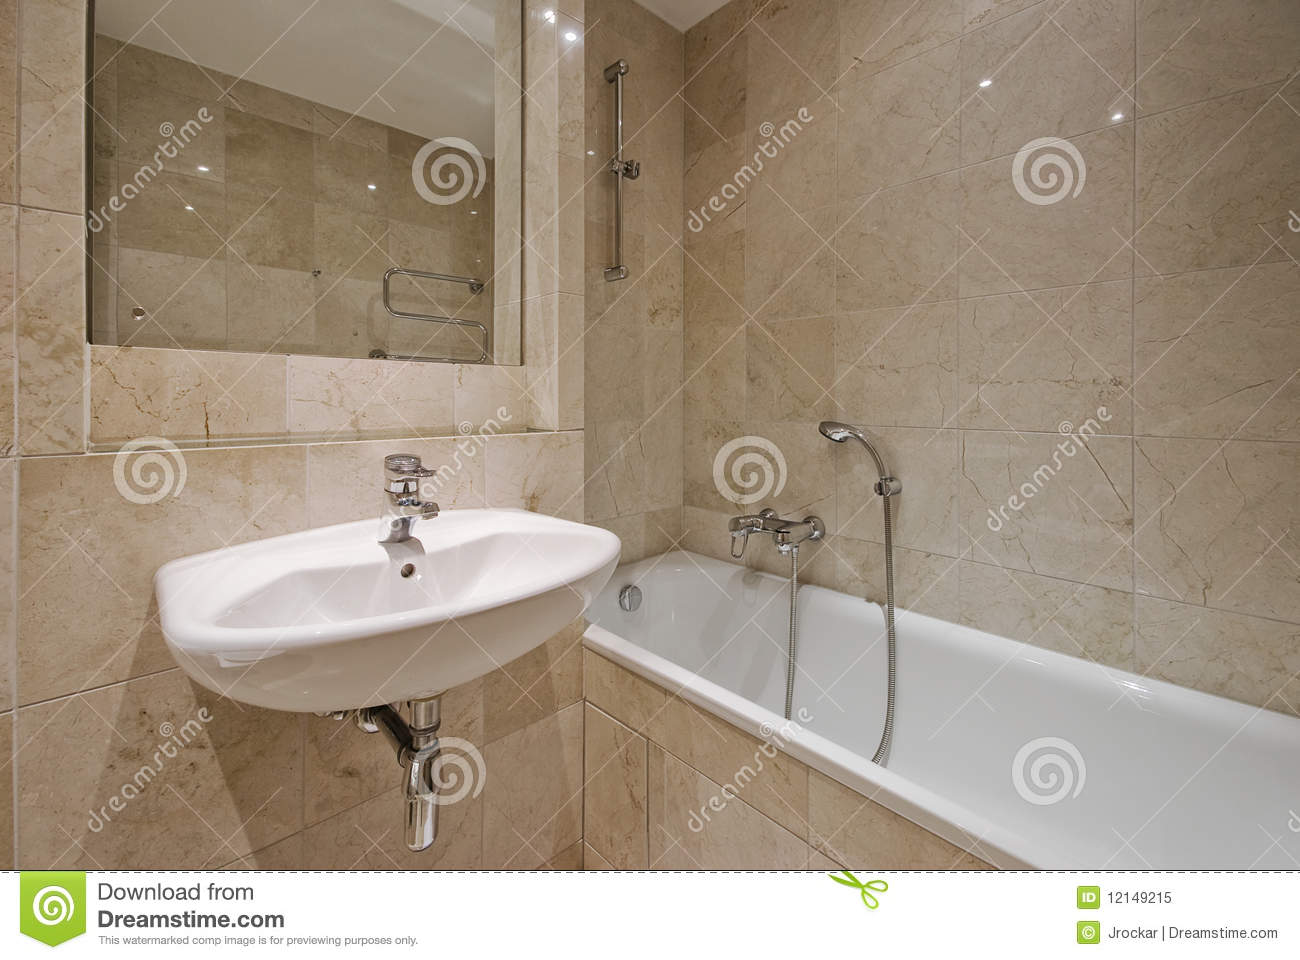 Marble Bathroom Stock Image Image Of Appliance Design 12149215